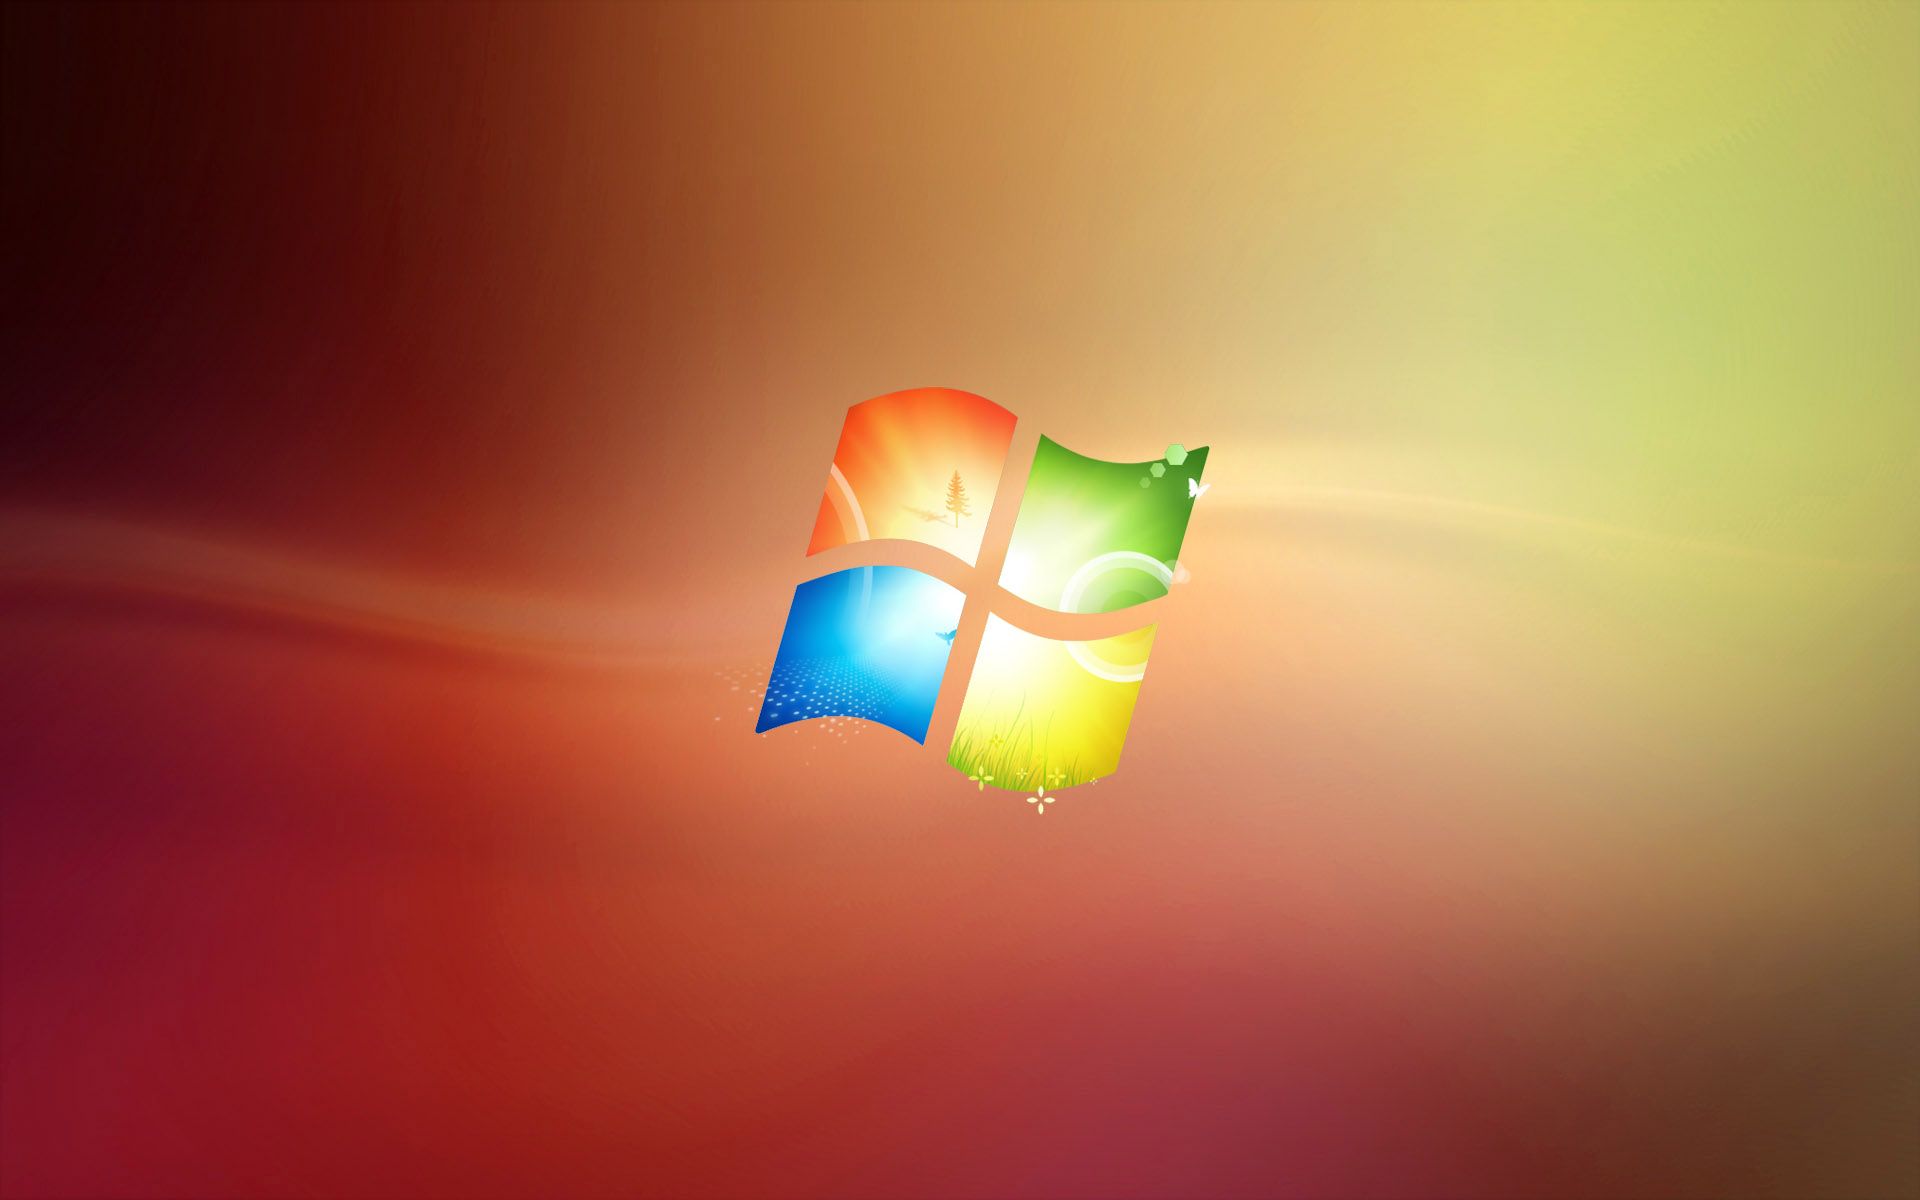 Windows 7 Images Summer Theme HD Wallpaper And Background Photos